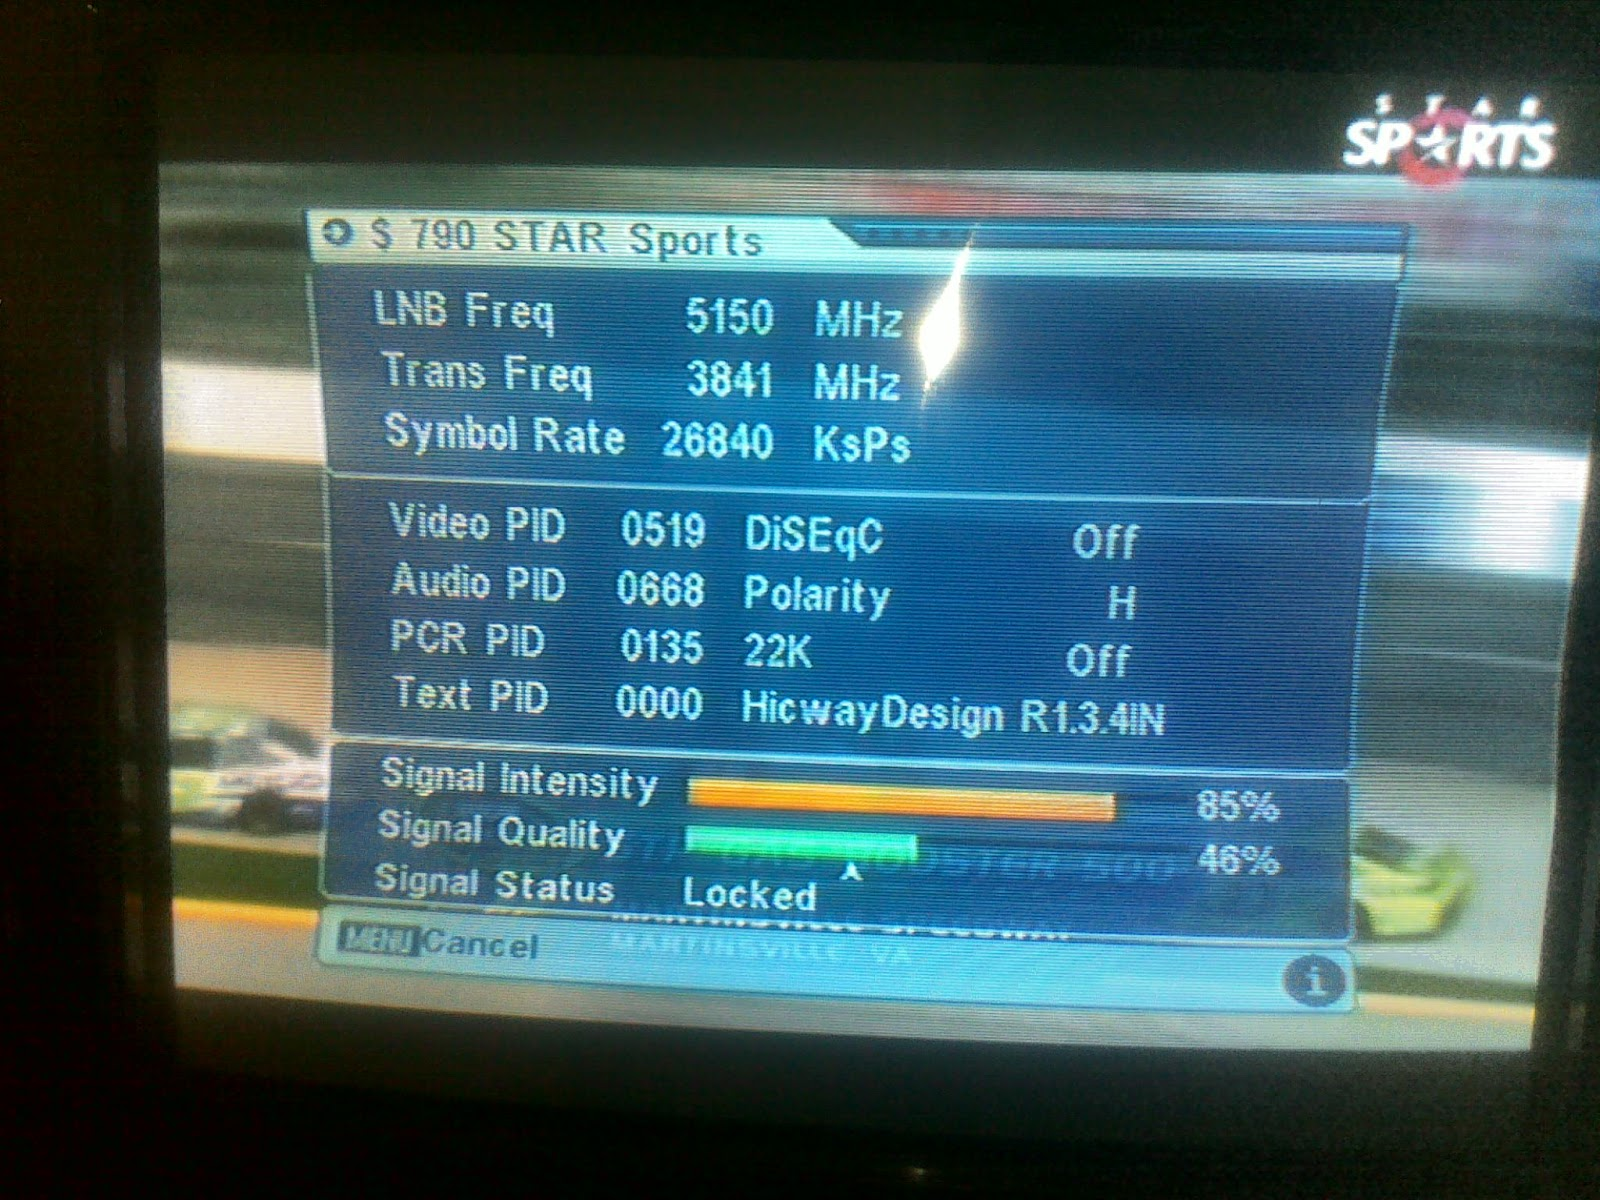 Star Sports BISS channel now FTA on AsiaSat 3S.